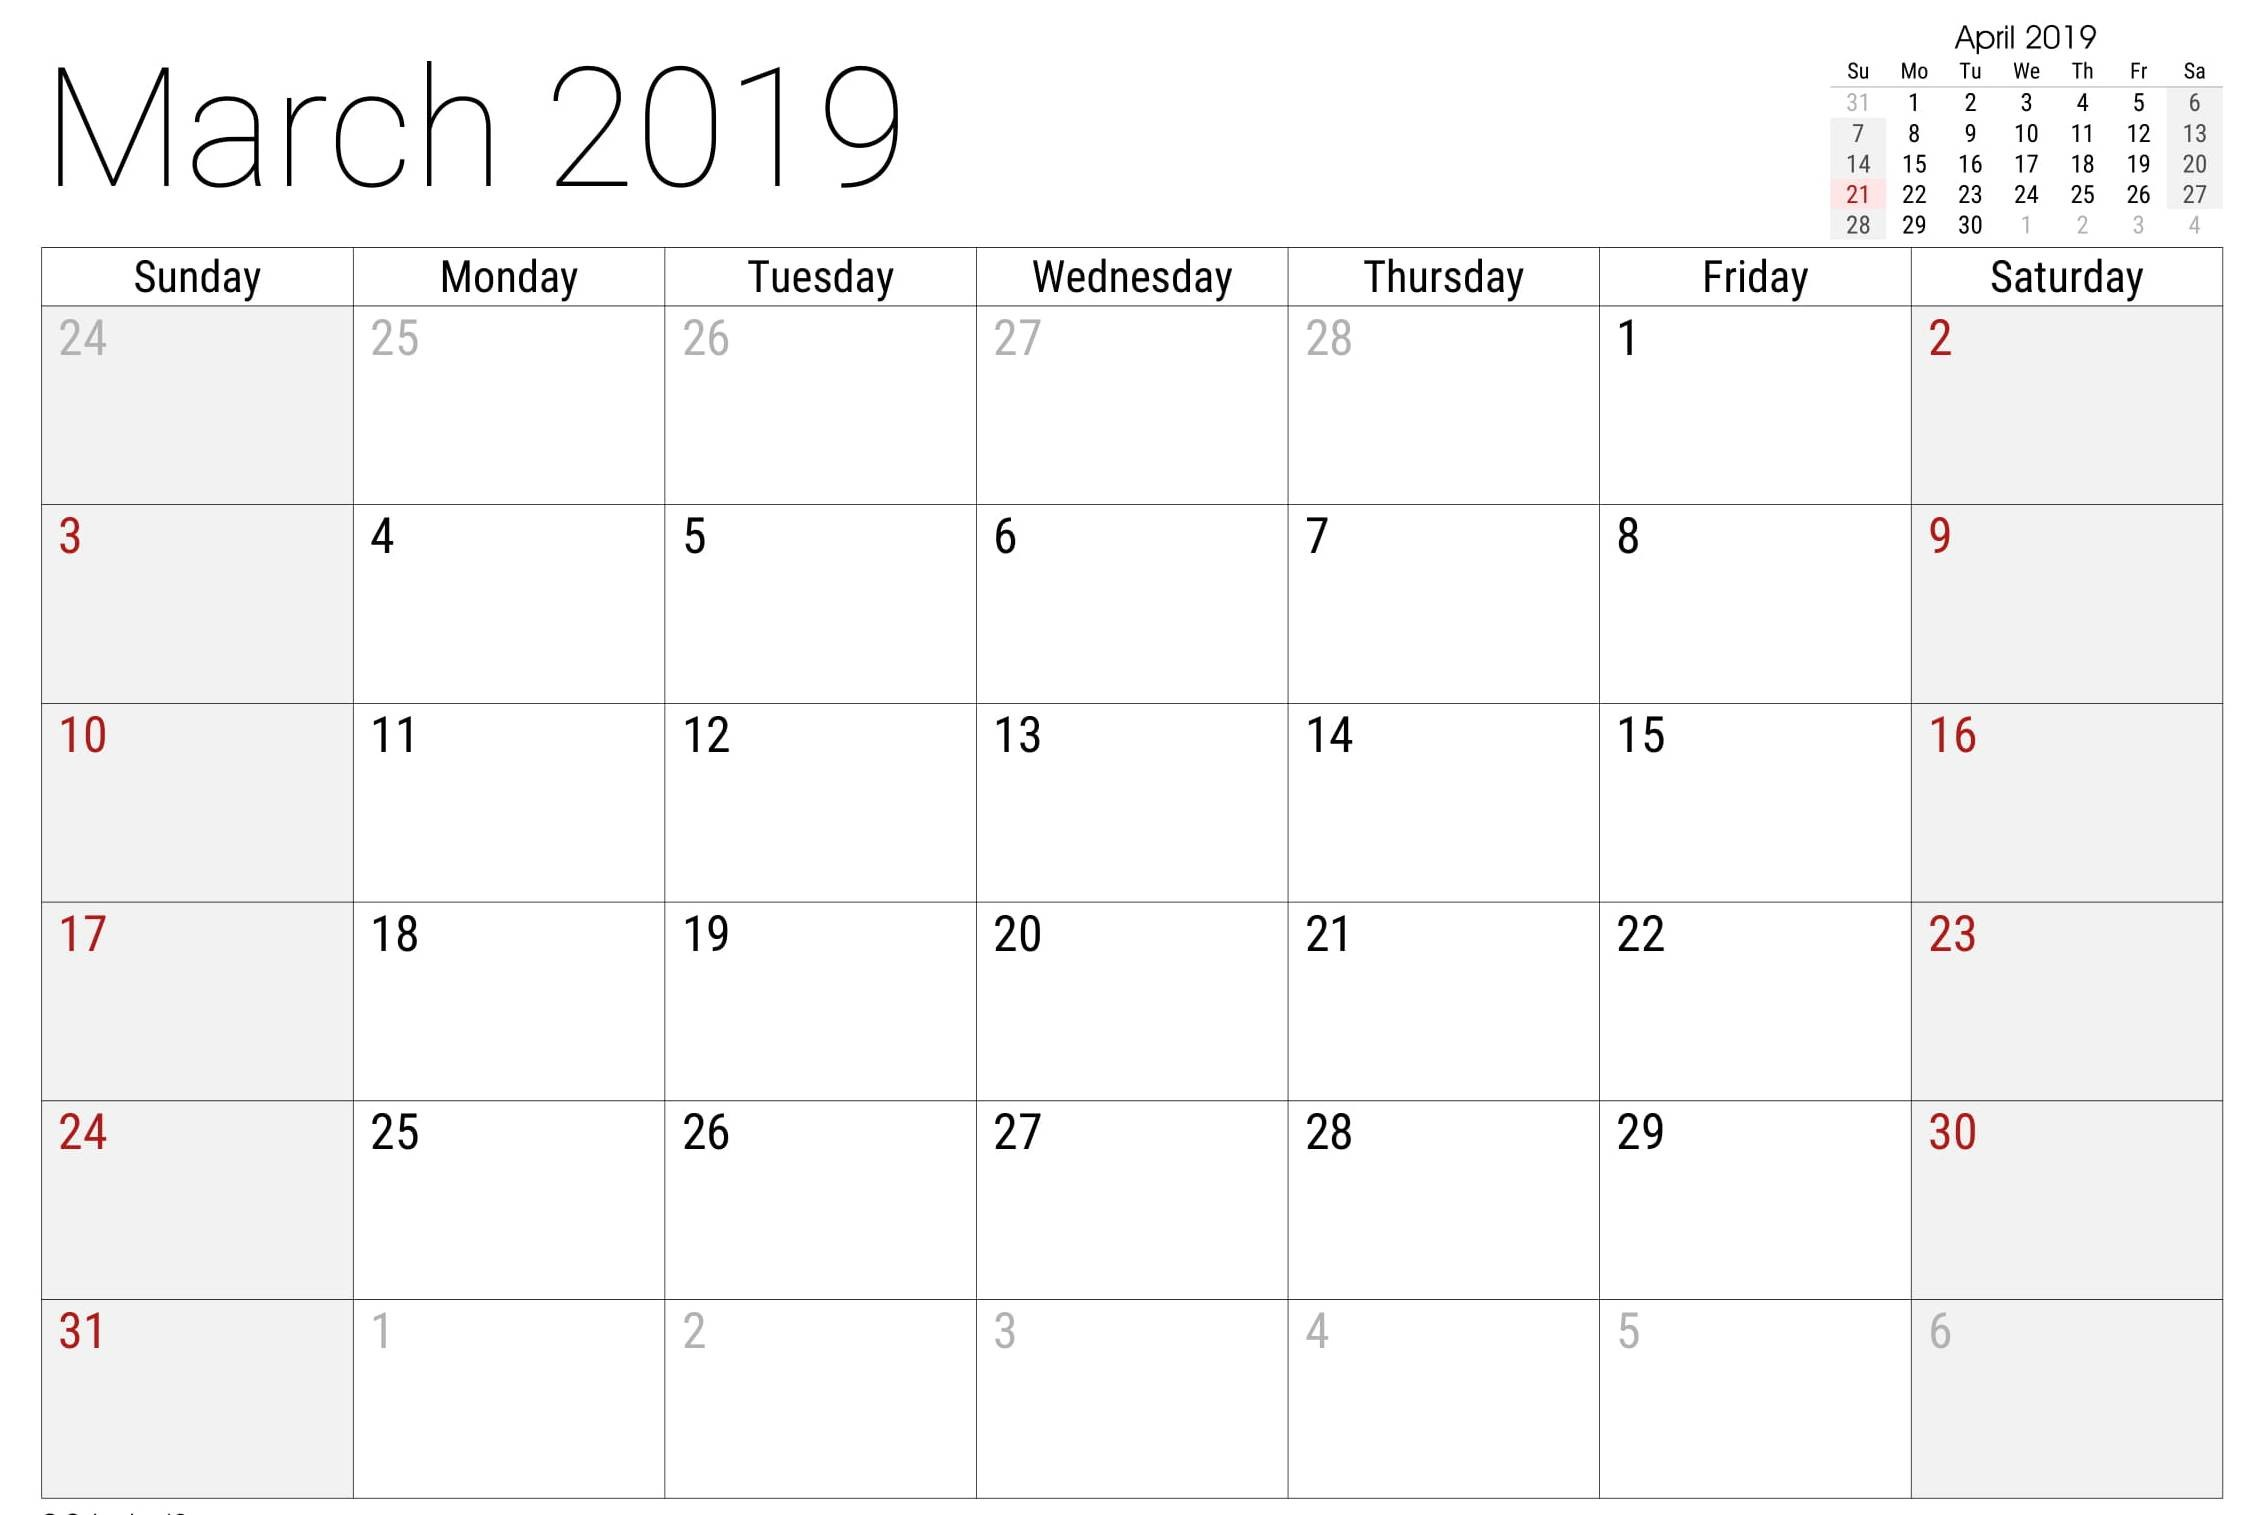 March Calendar 2019 Actual Print March Calendar 2019 – Free Calendar Templates & Worksheets for Of March Calendar 2019 Más Recientes March 2019 Wall Calendar Colorful Sketch Horizontal Template Letter